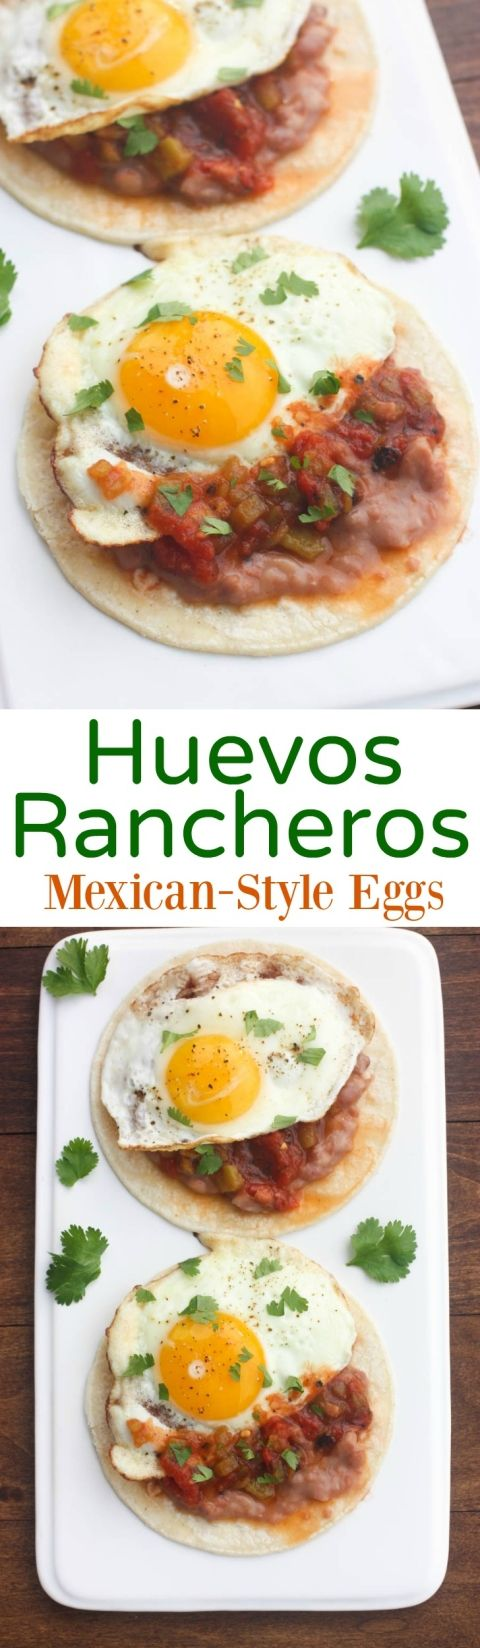 Huevos Rancheros - Mexican style eggs with corn tortillas, refried beans and salsa. Delicious healthy breakfast that the whole family loves! | Tastes Better From Scratch